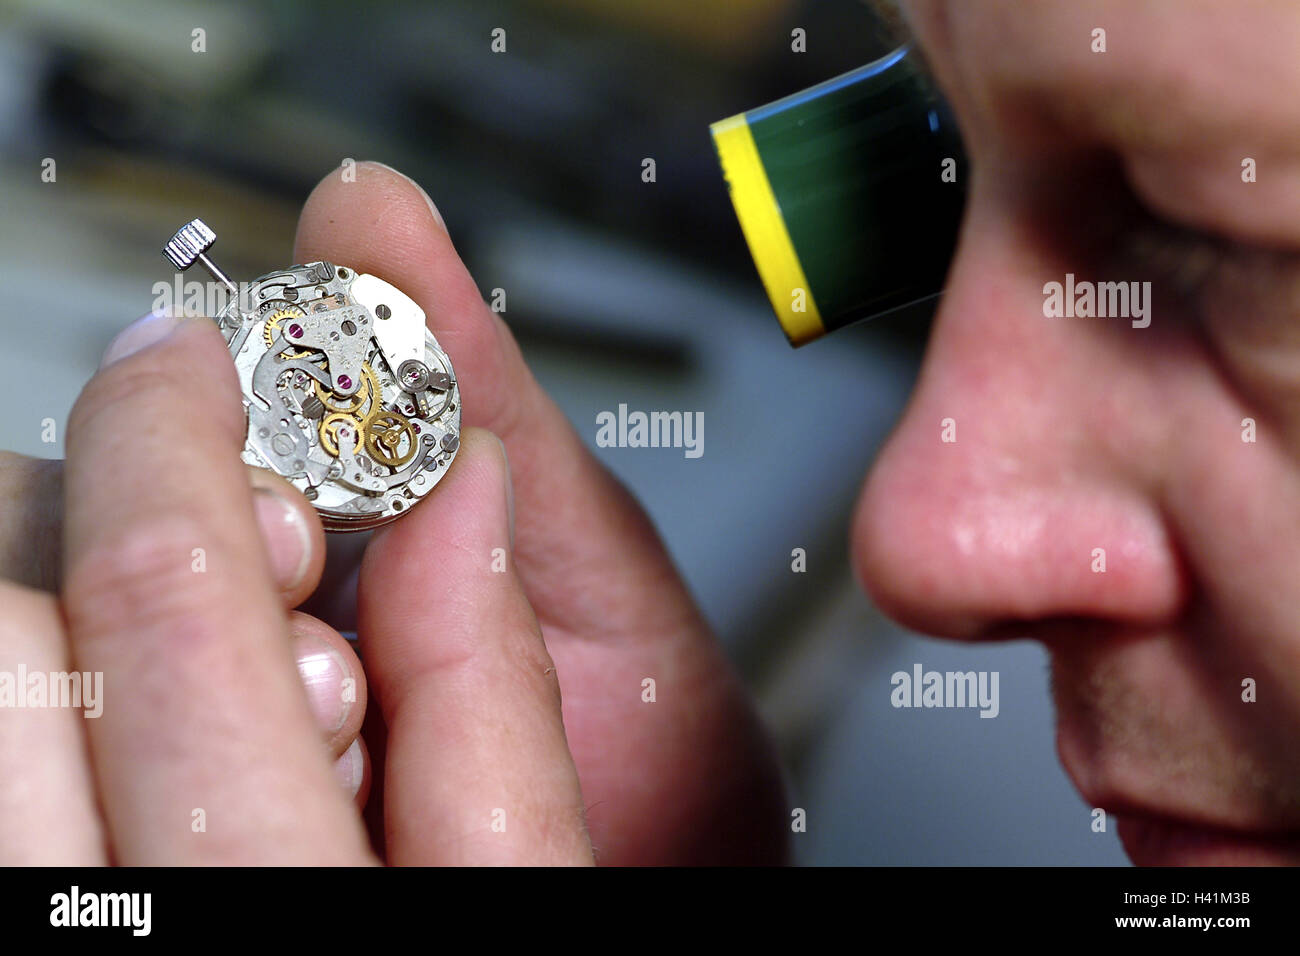 Watchmakers, view loupe, clockwork, tread, curled, man, 40-50 years, occupation, craft, craft occupation, skill, - Stock Image